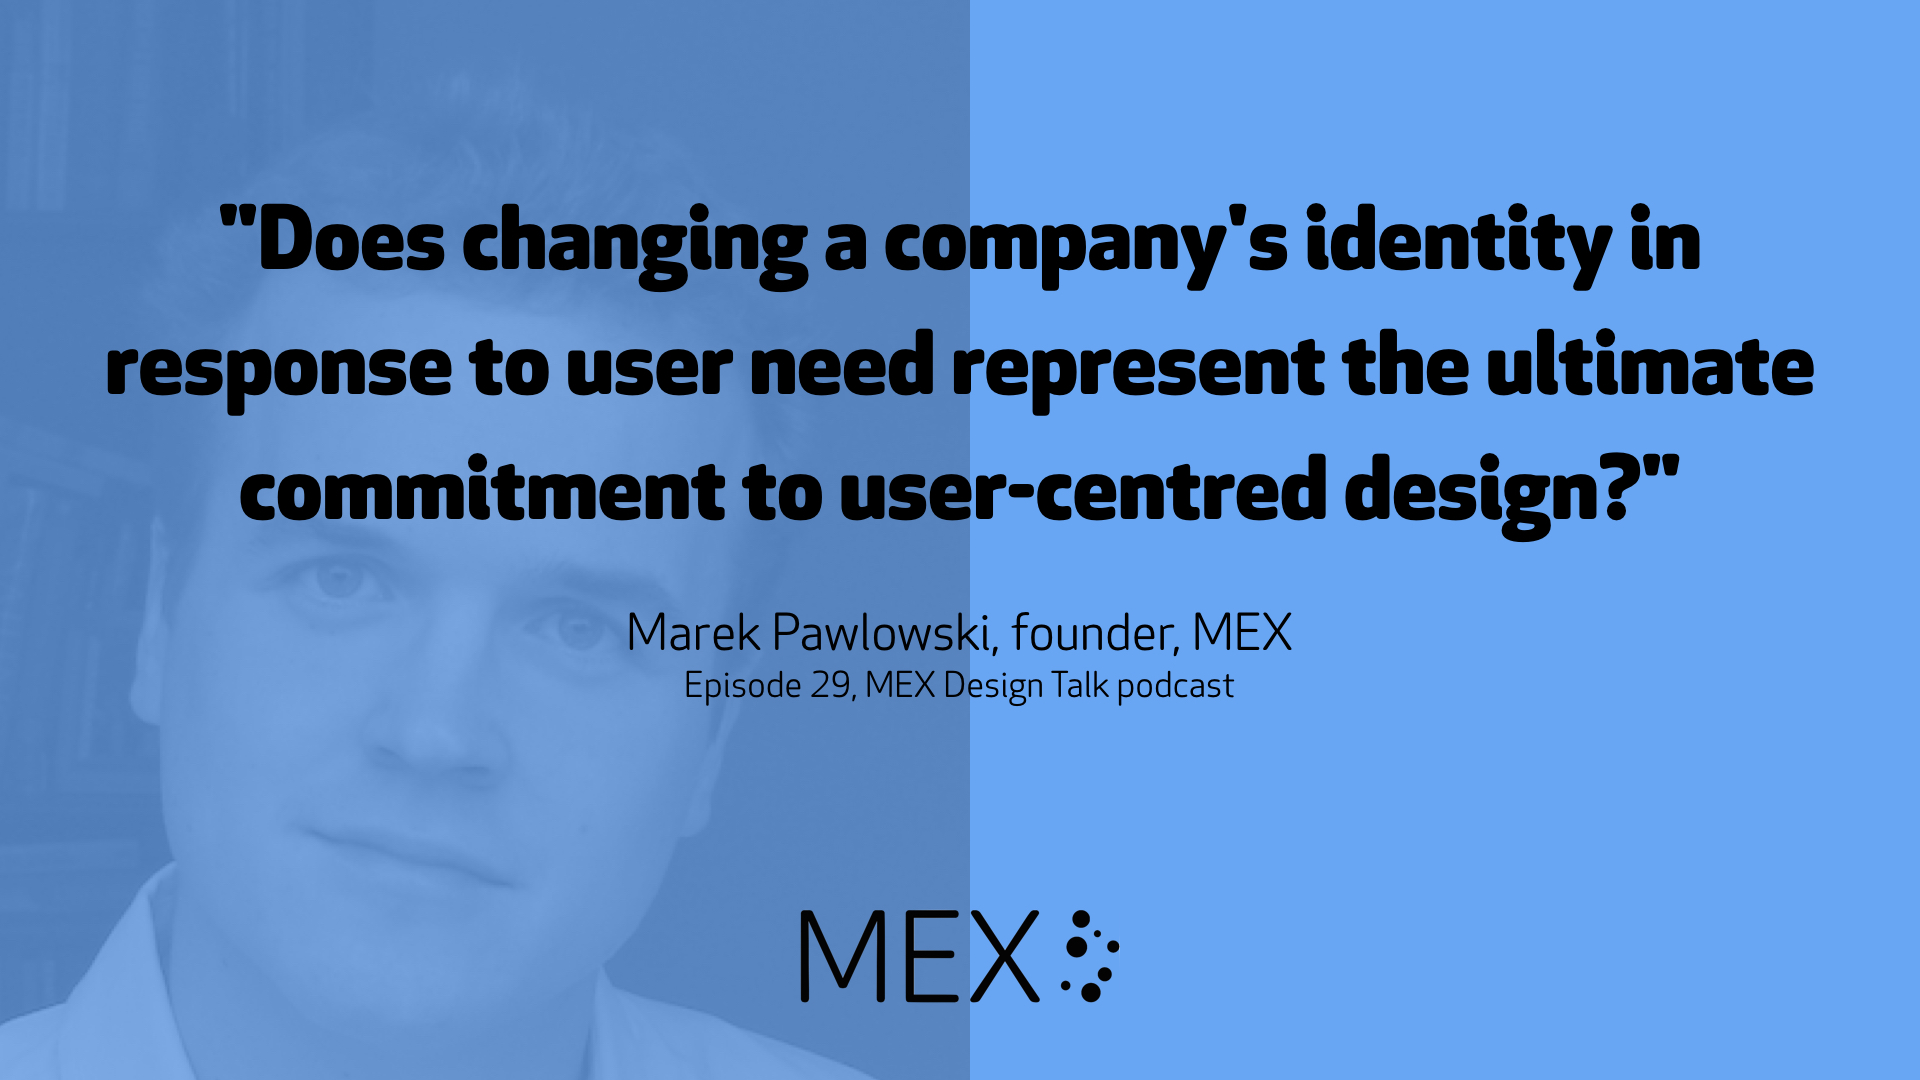 """Does changing a company's identity in response to user need represent the ultimate commitment to user-centred design?""   Marek Pawlowski, founder, MEX Episode 29, MEX Design Talk podcast"